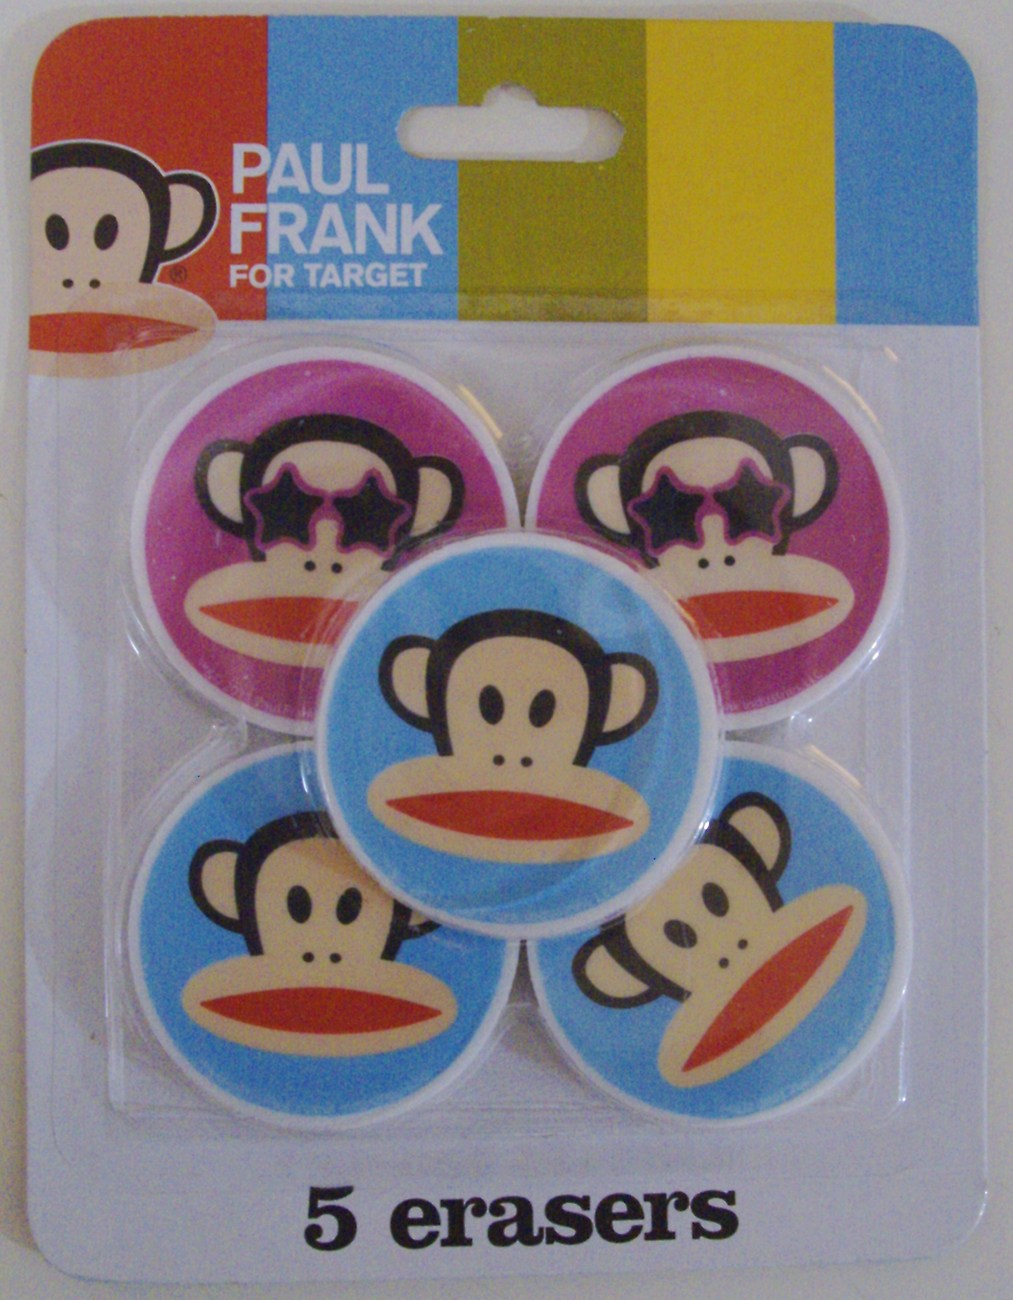 Paul Frank for Target Coolius Julius Monkey set of 5 erasers - New